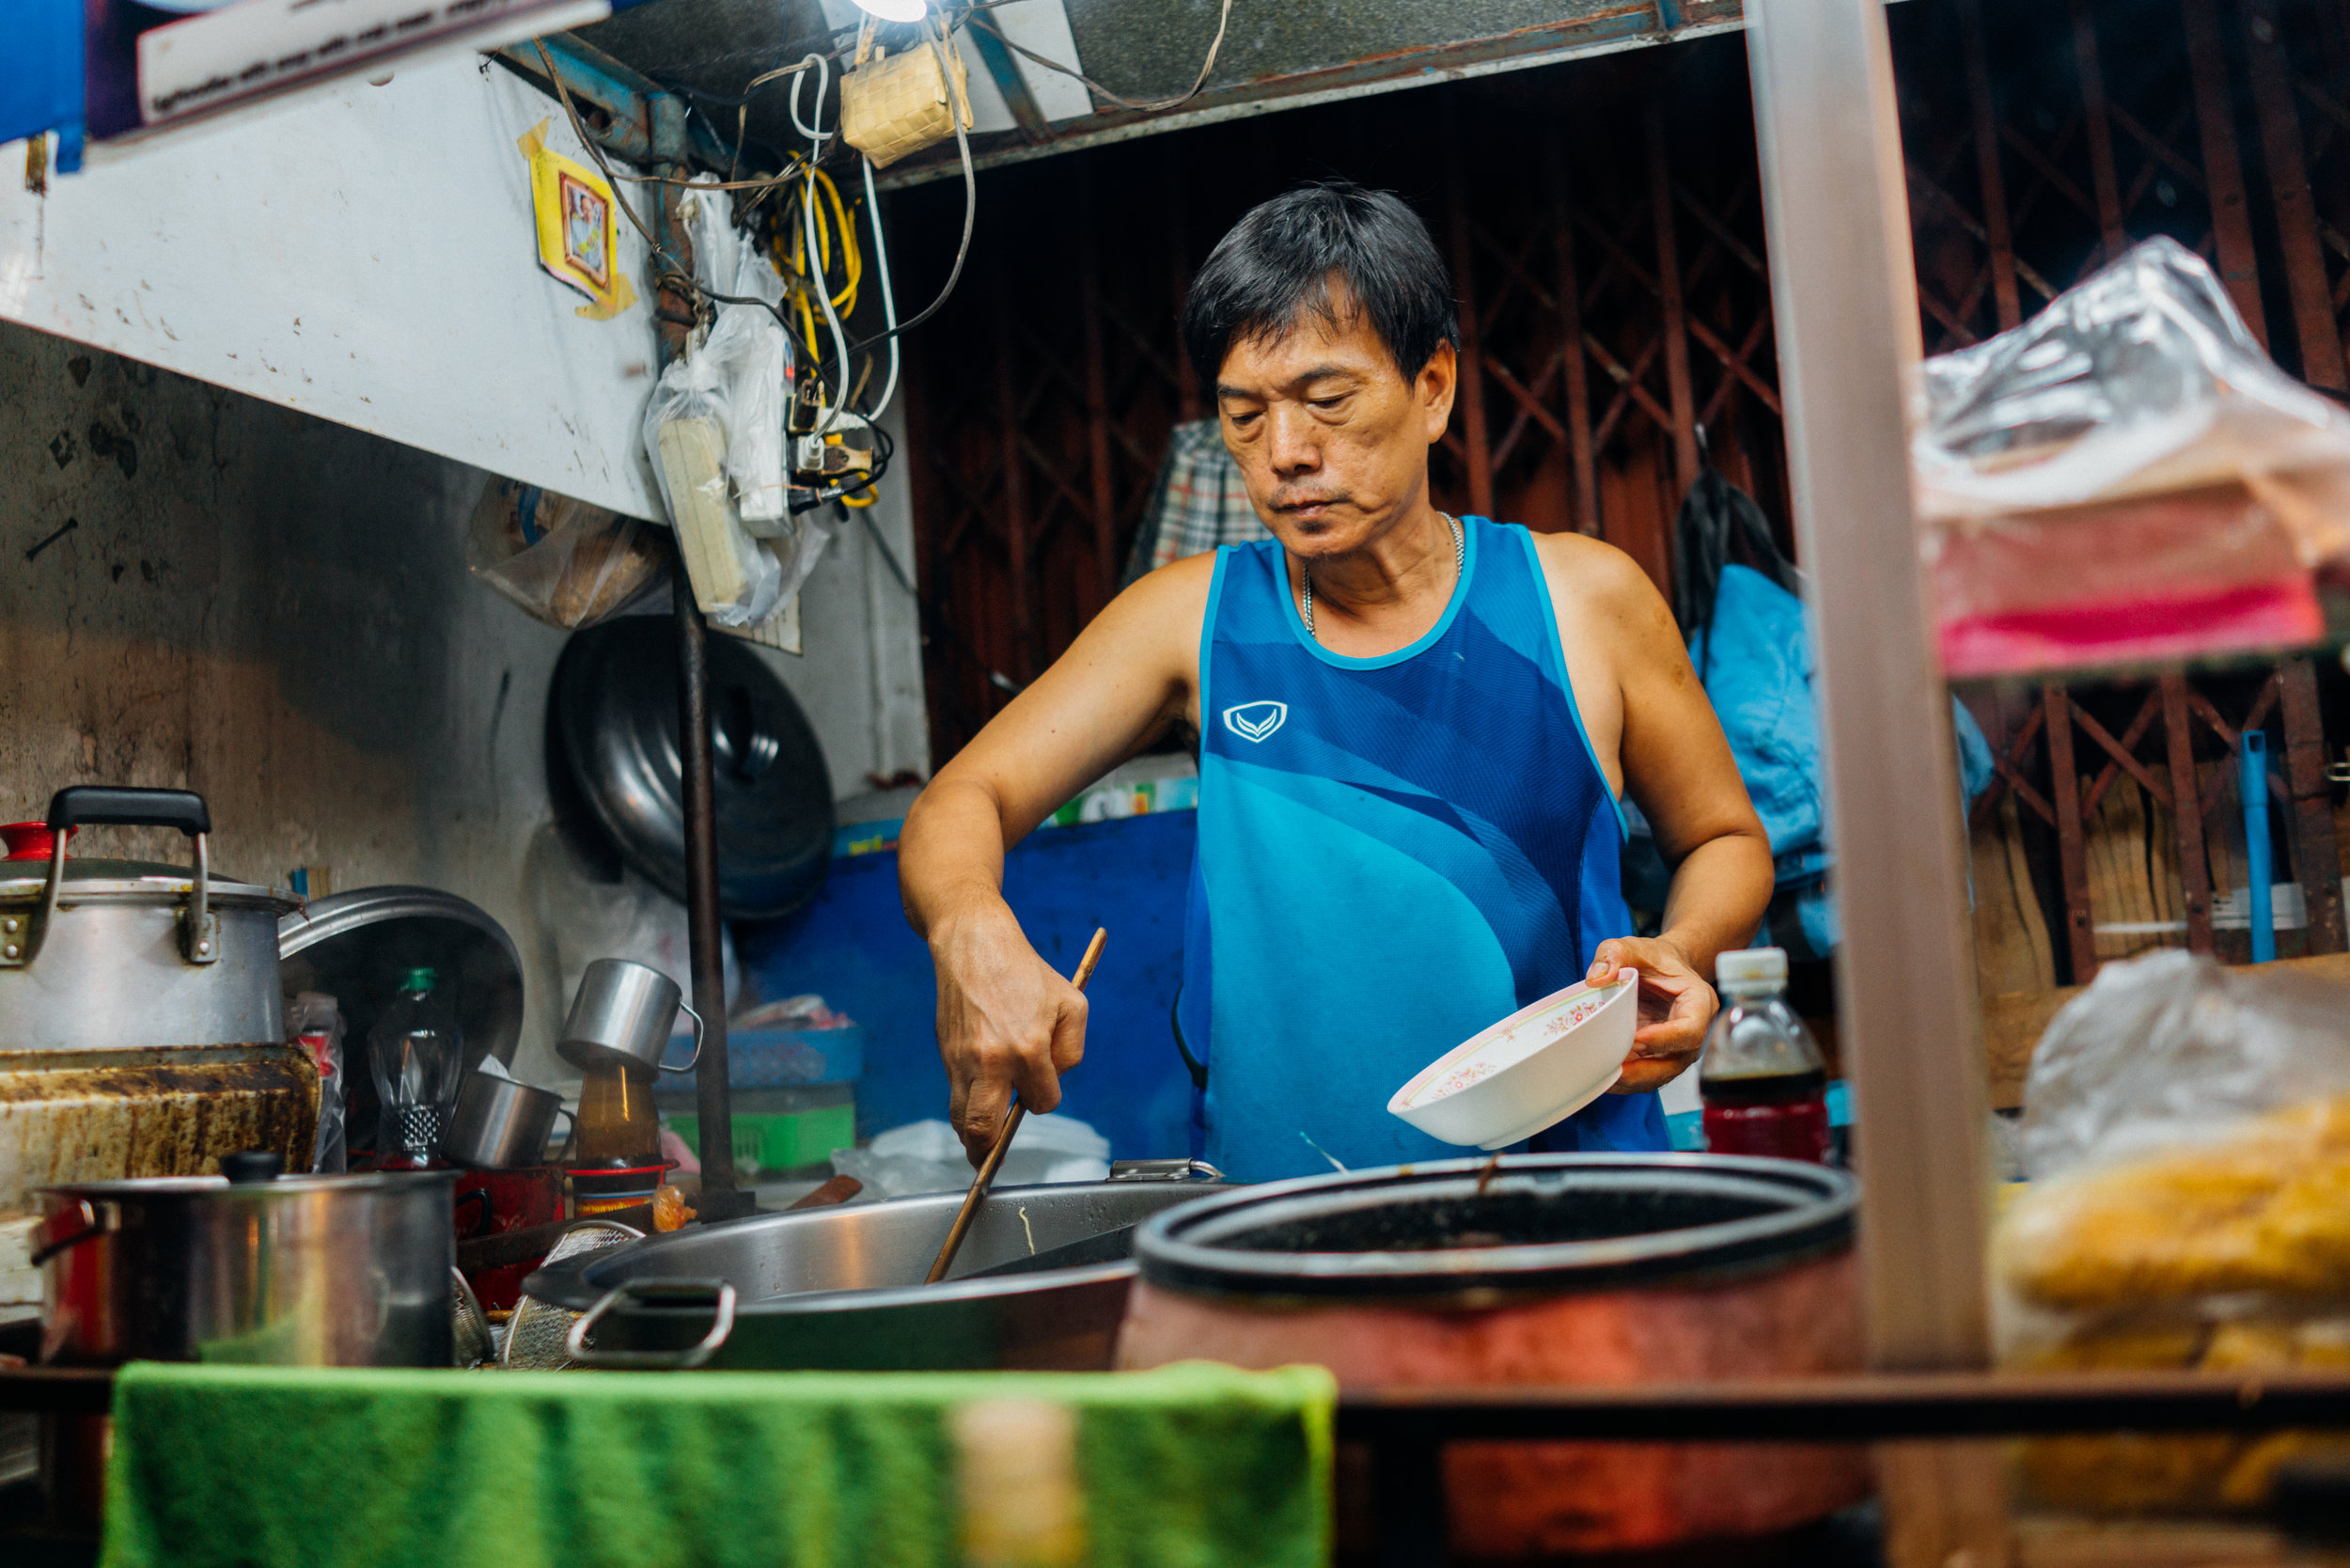 One of the last remaining vendors on Soi 38, once a happening street food night market; most have been forced to move due to construction